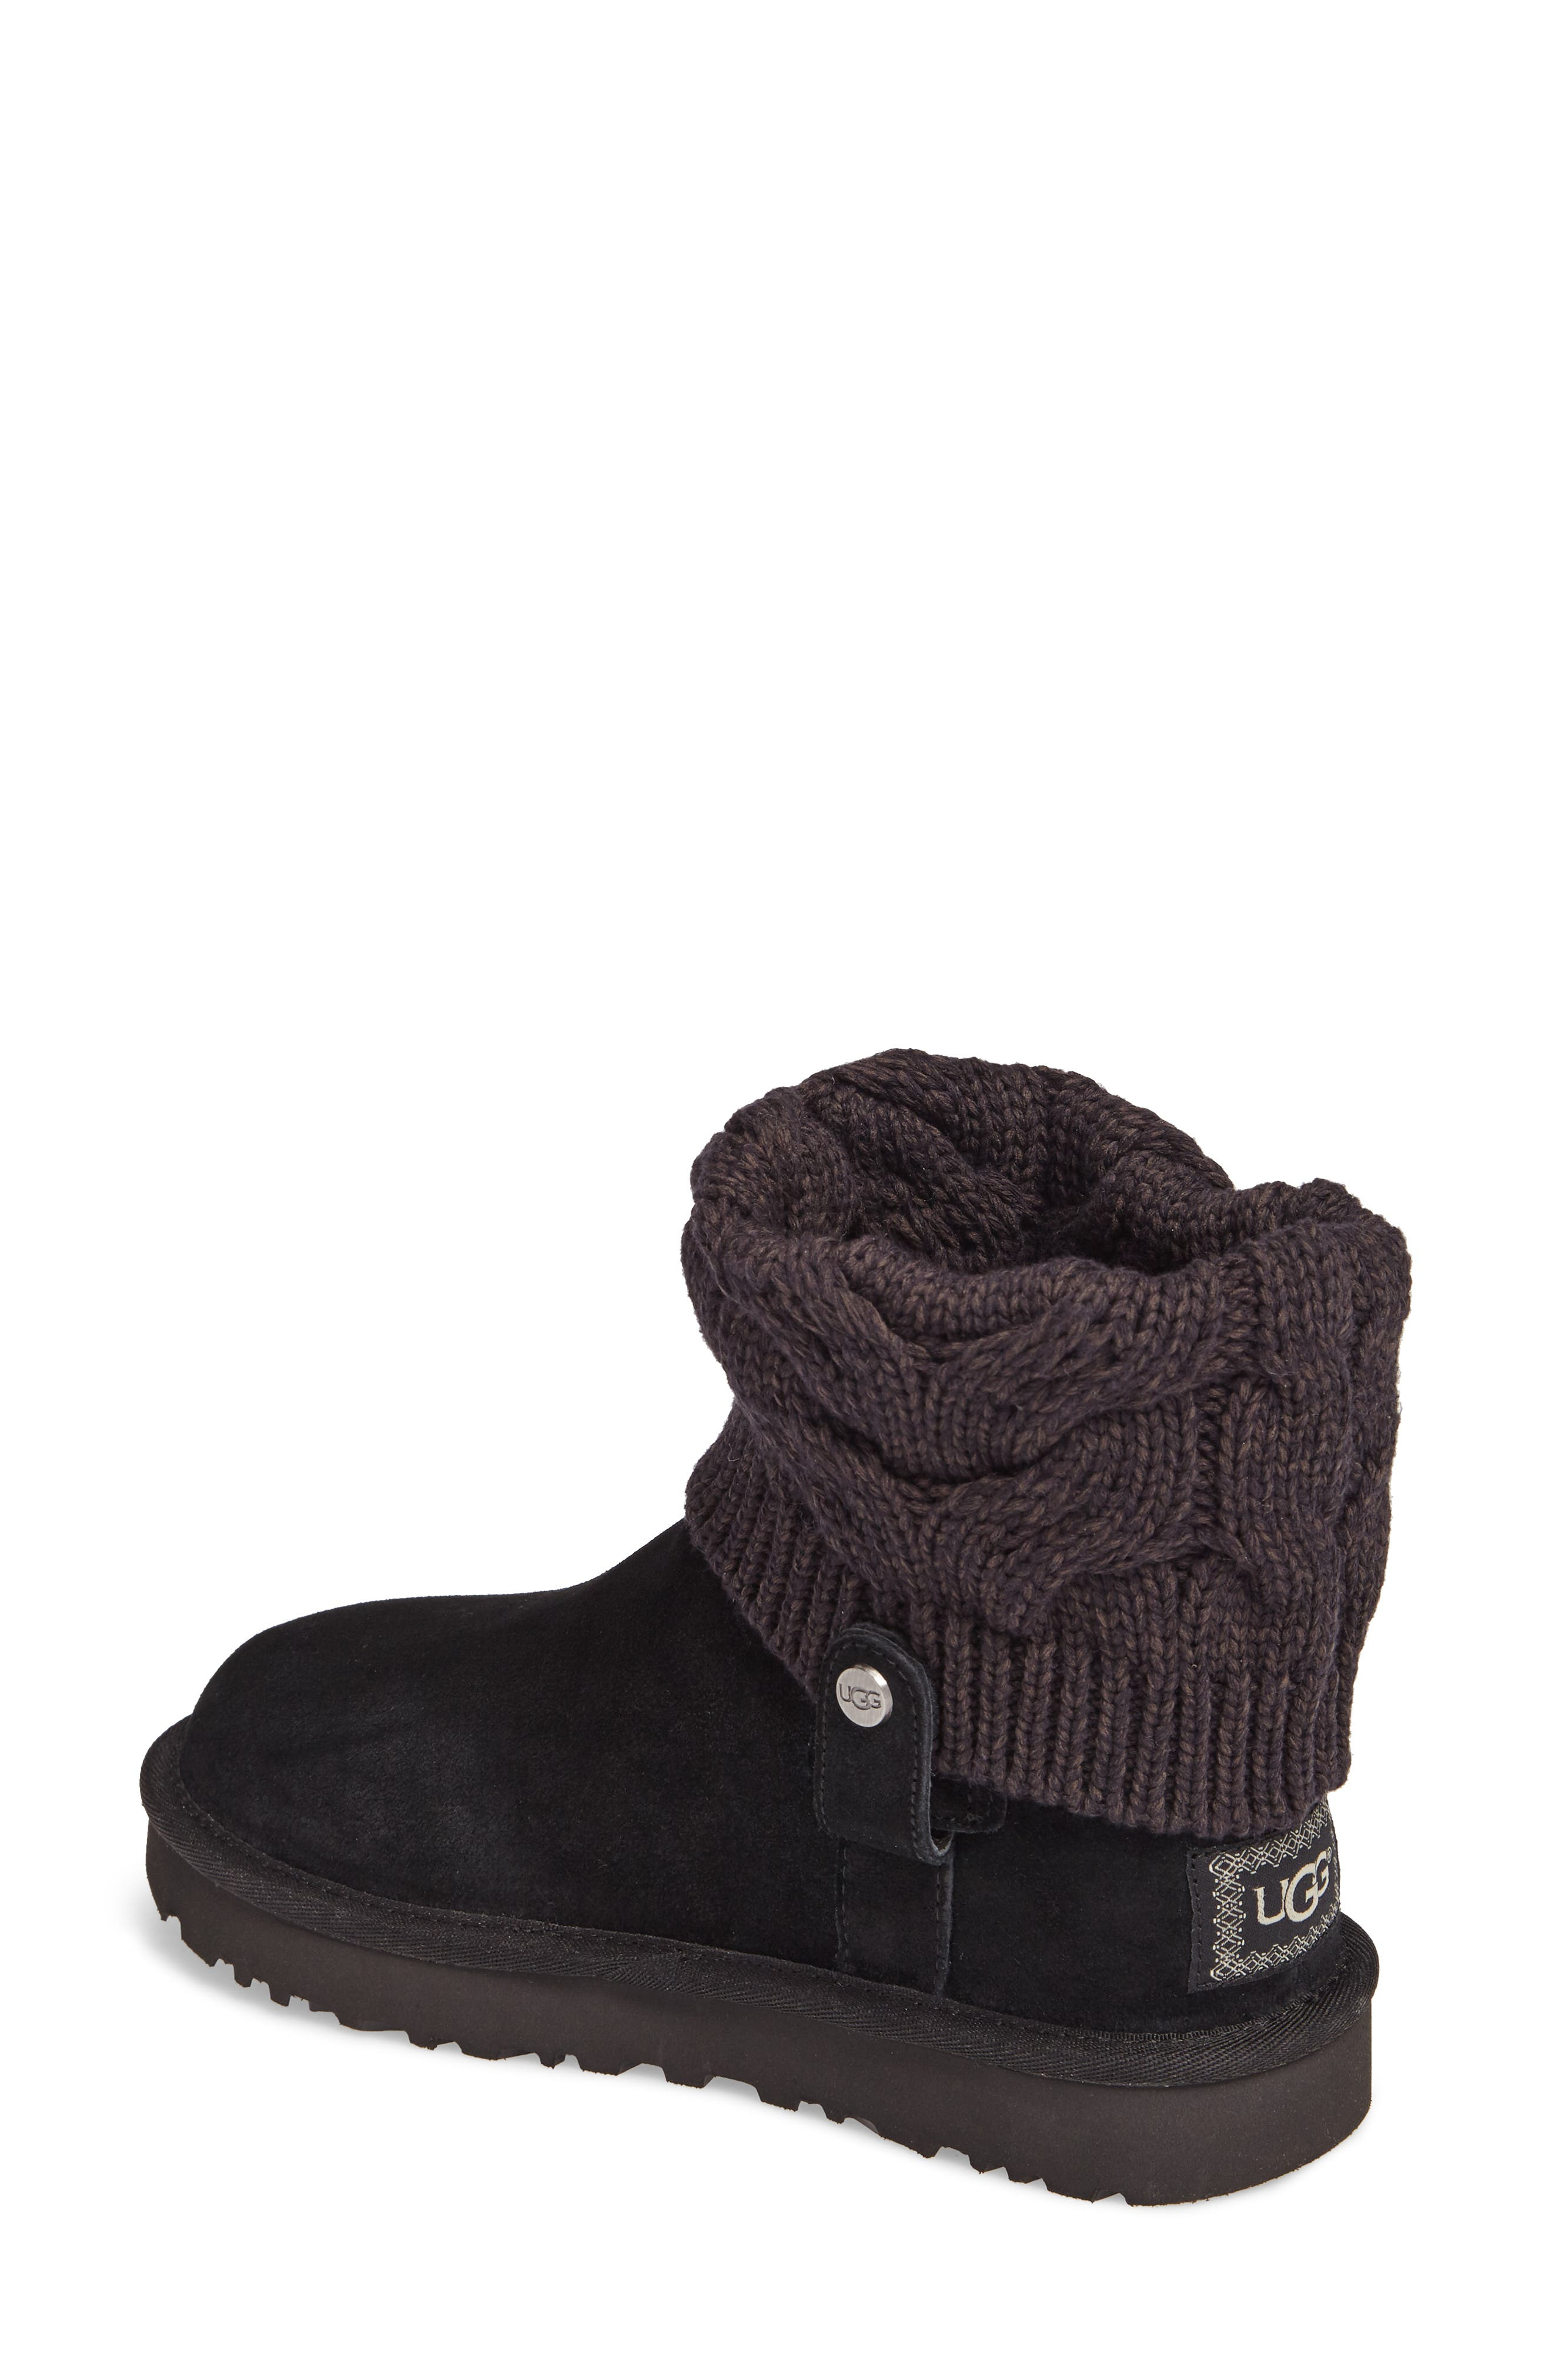 Saela Knit Cuff Boot,                             Alternate thumbnail 2, color,                             Black Suede